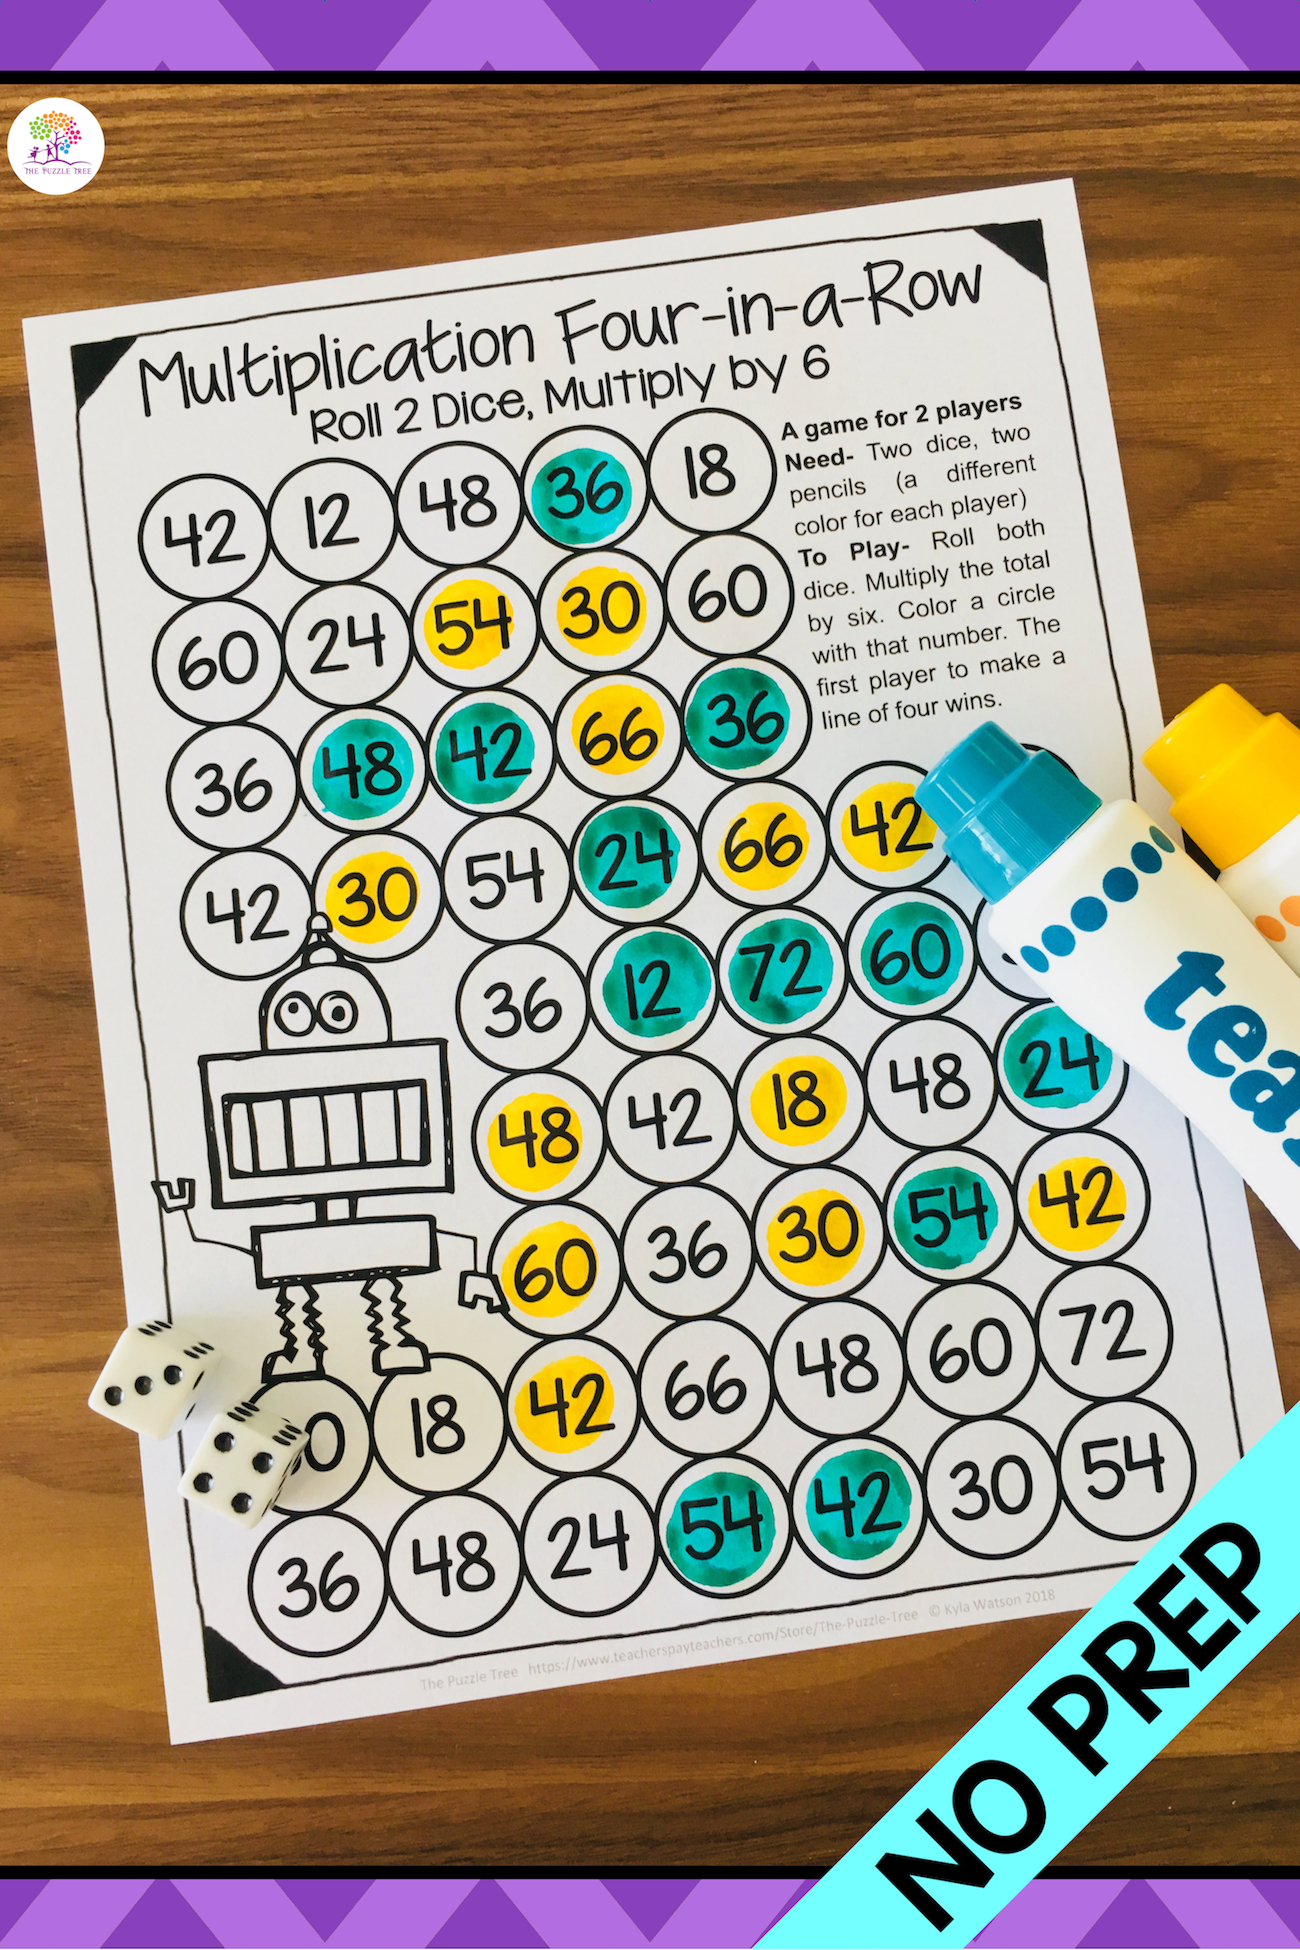 Multiplication Games Printable: Four-In-A-Row Math Games For inside Printable Multiplication Games Ks2